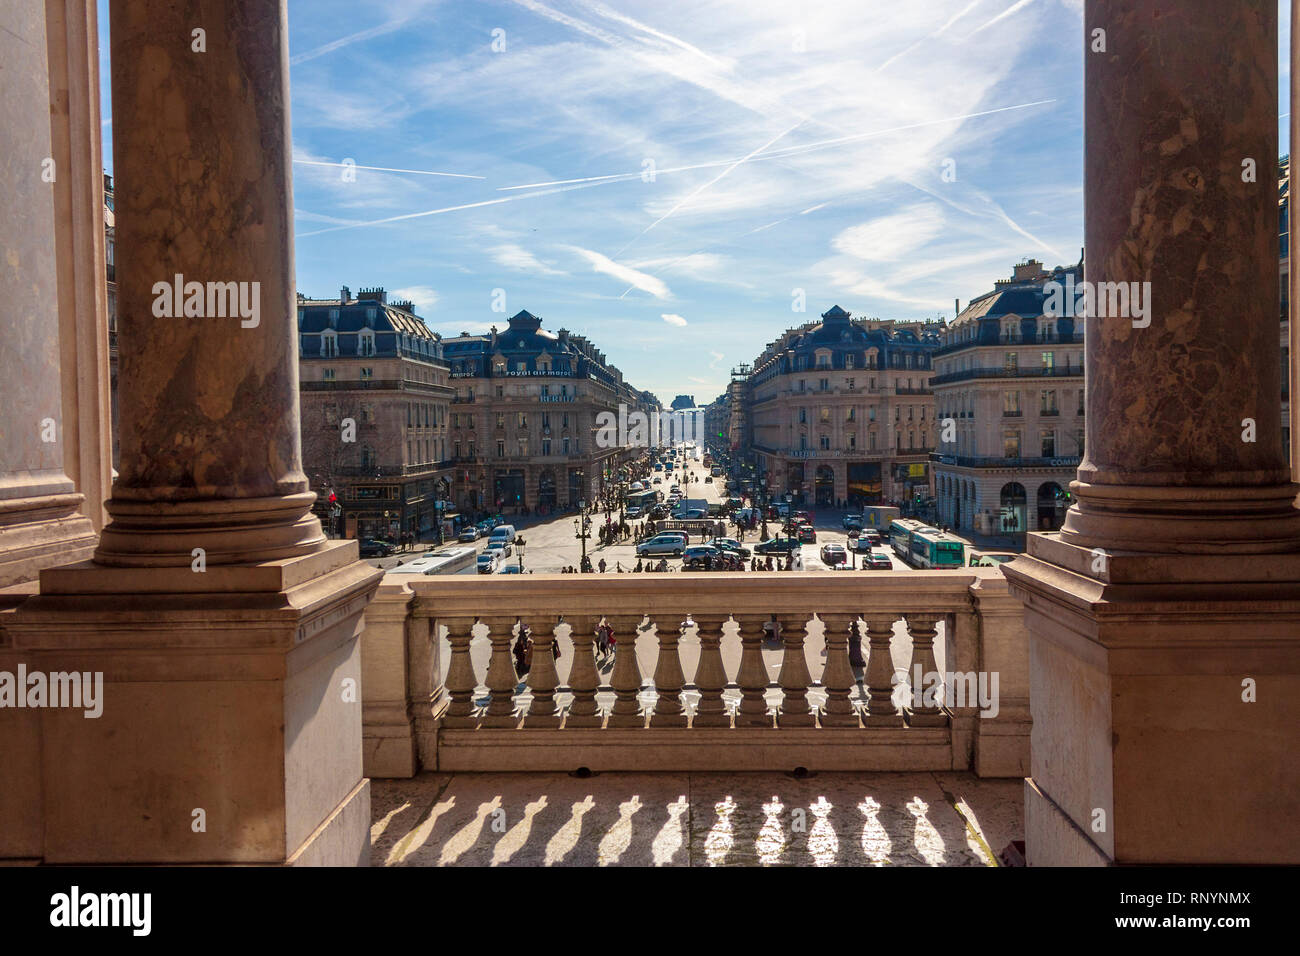 Looking out onto the Place de l'Opéra from the Palais Garnier, Paris, France - Stock Image